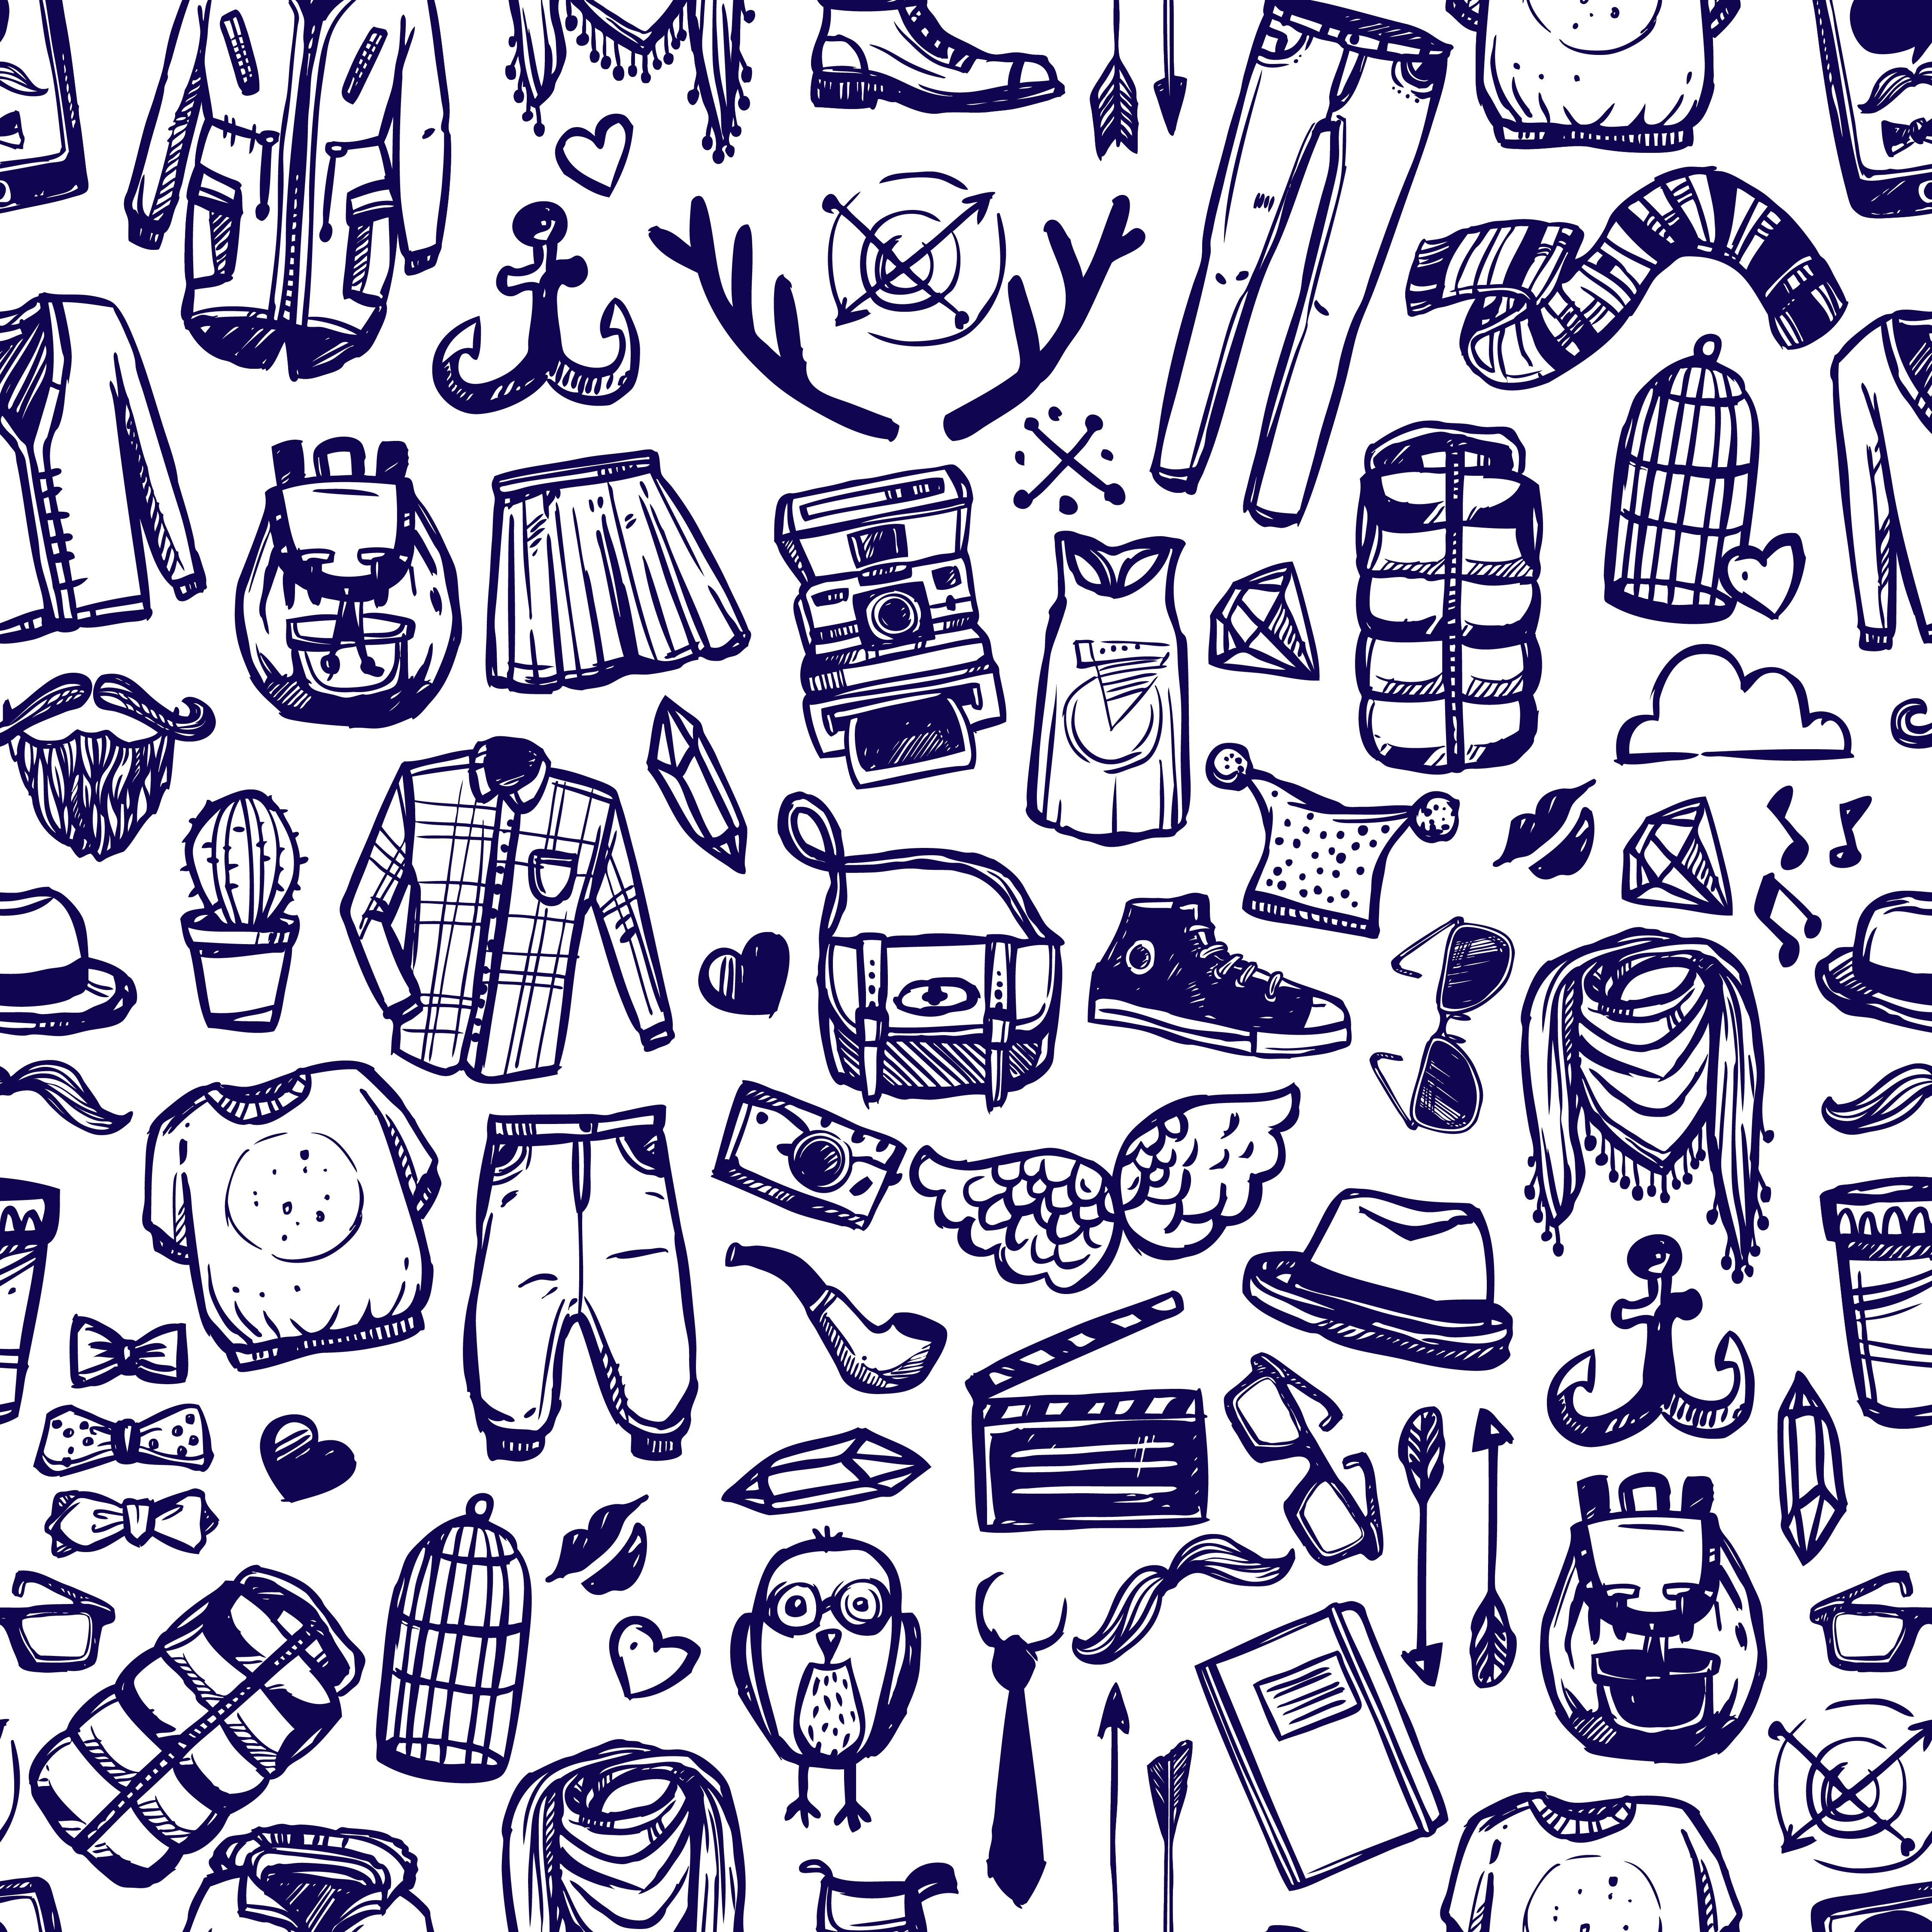 Hipster Fashion Clothing Doodle Seamless Pattern Download Free Vectors Clipart Graphics Vector Art